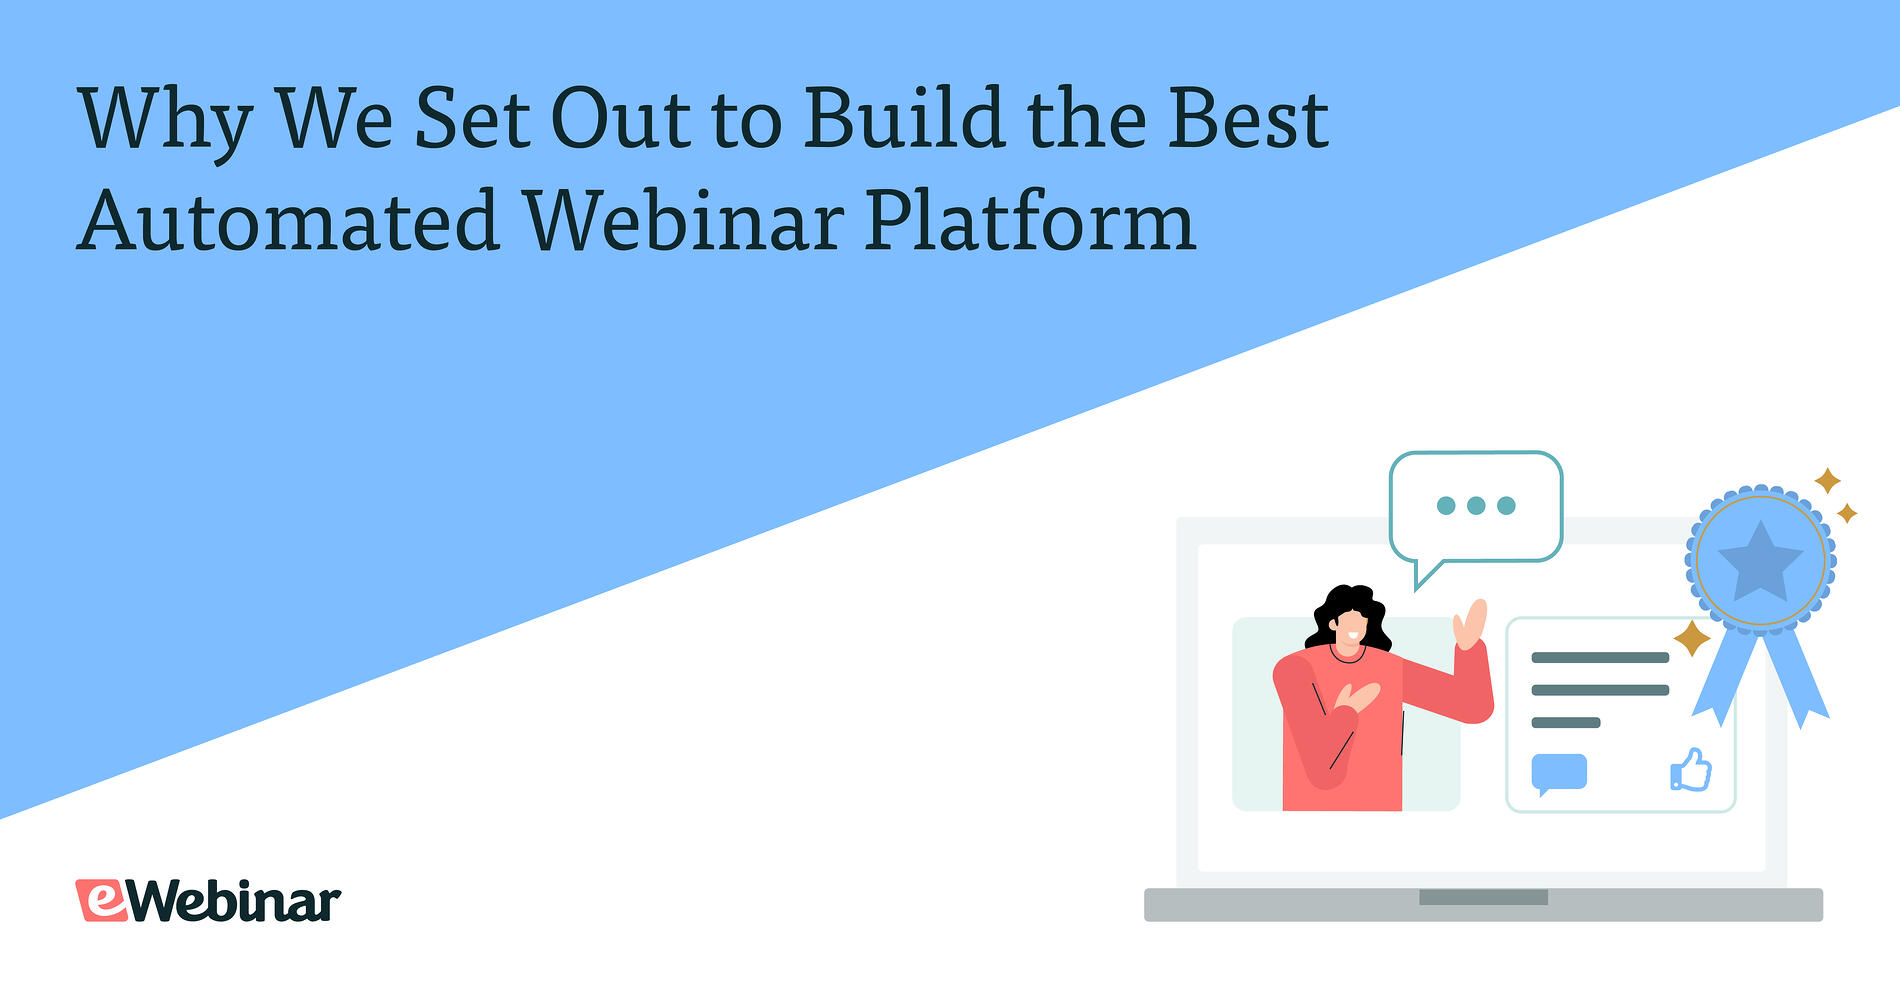 Why We Set Out to Build the Best Automated Webinar Platform